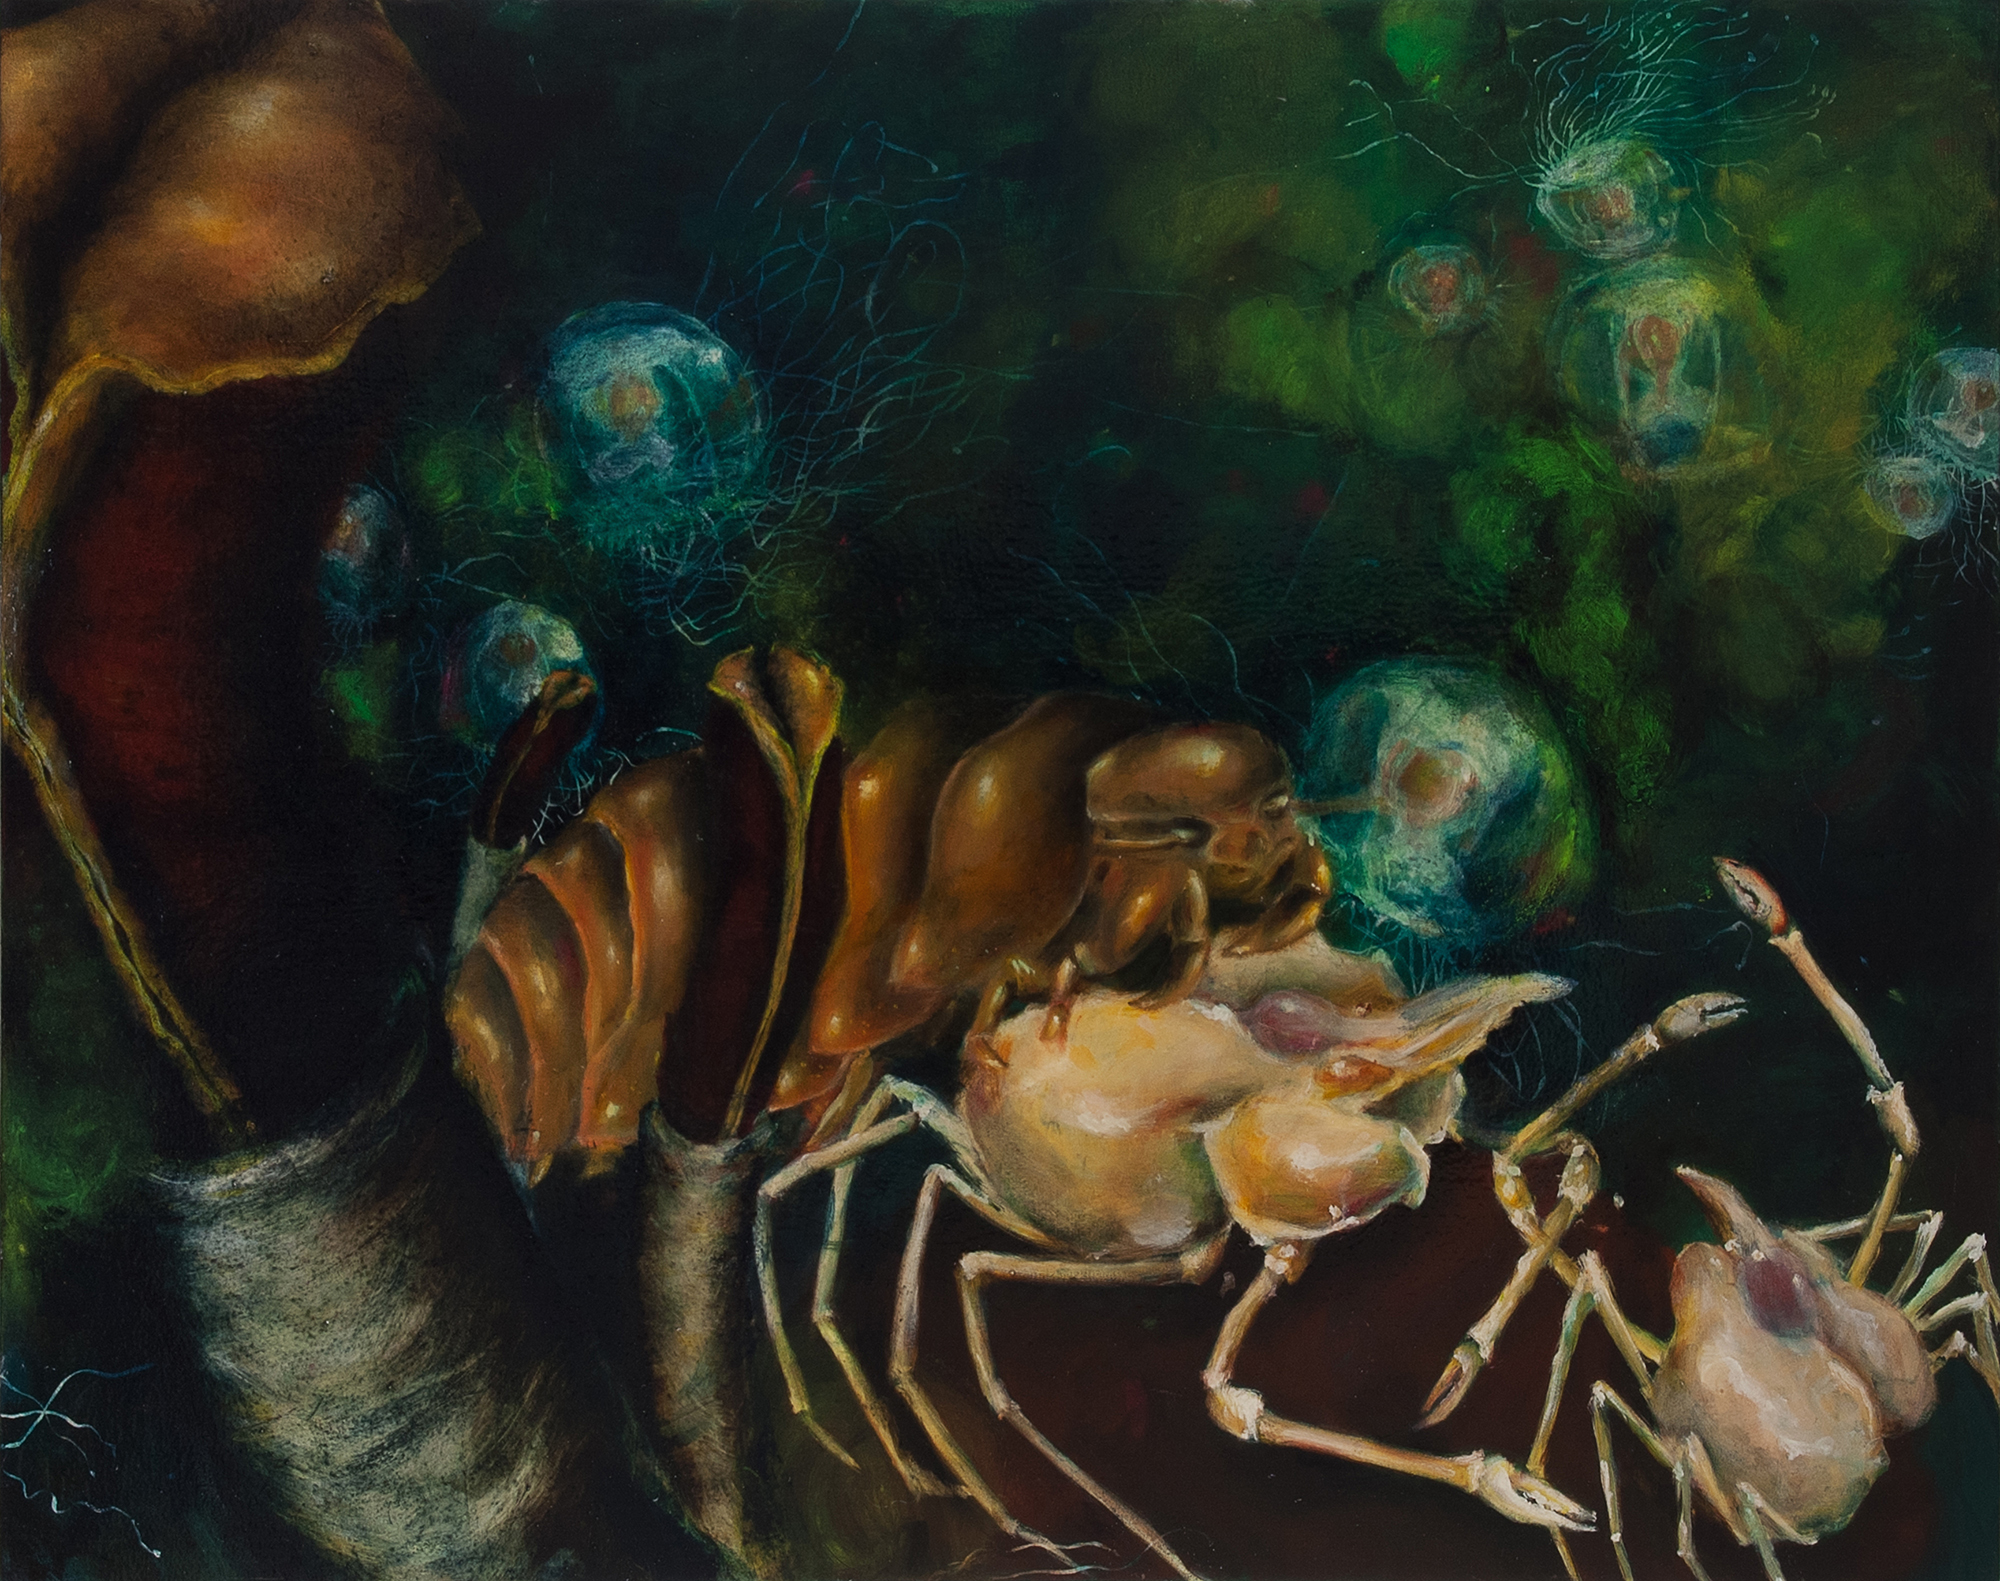 13. Benthic Bacchanal, 2012, Oil on canvas, 48 x 60 inches